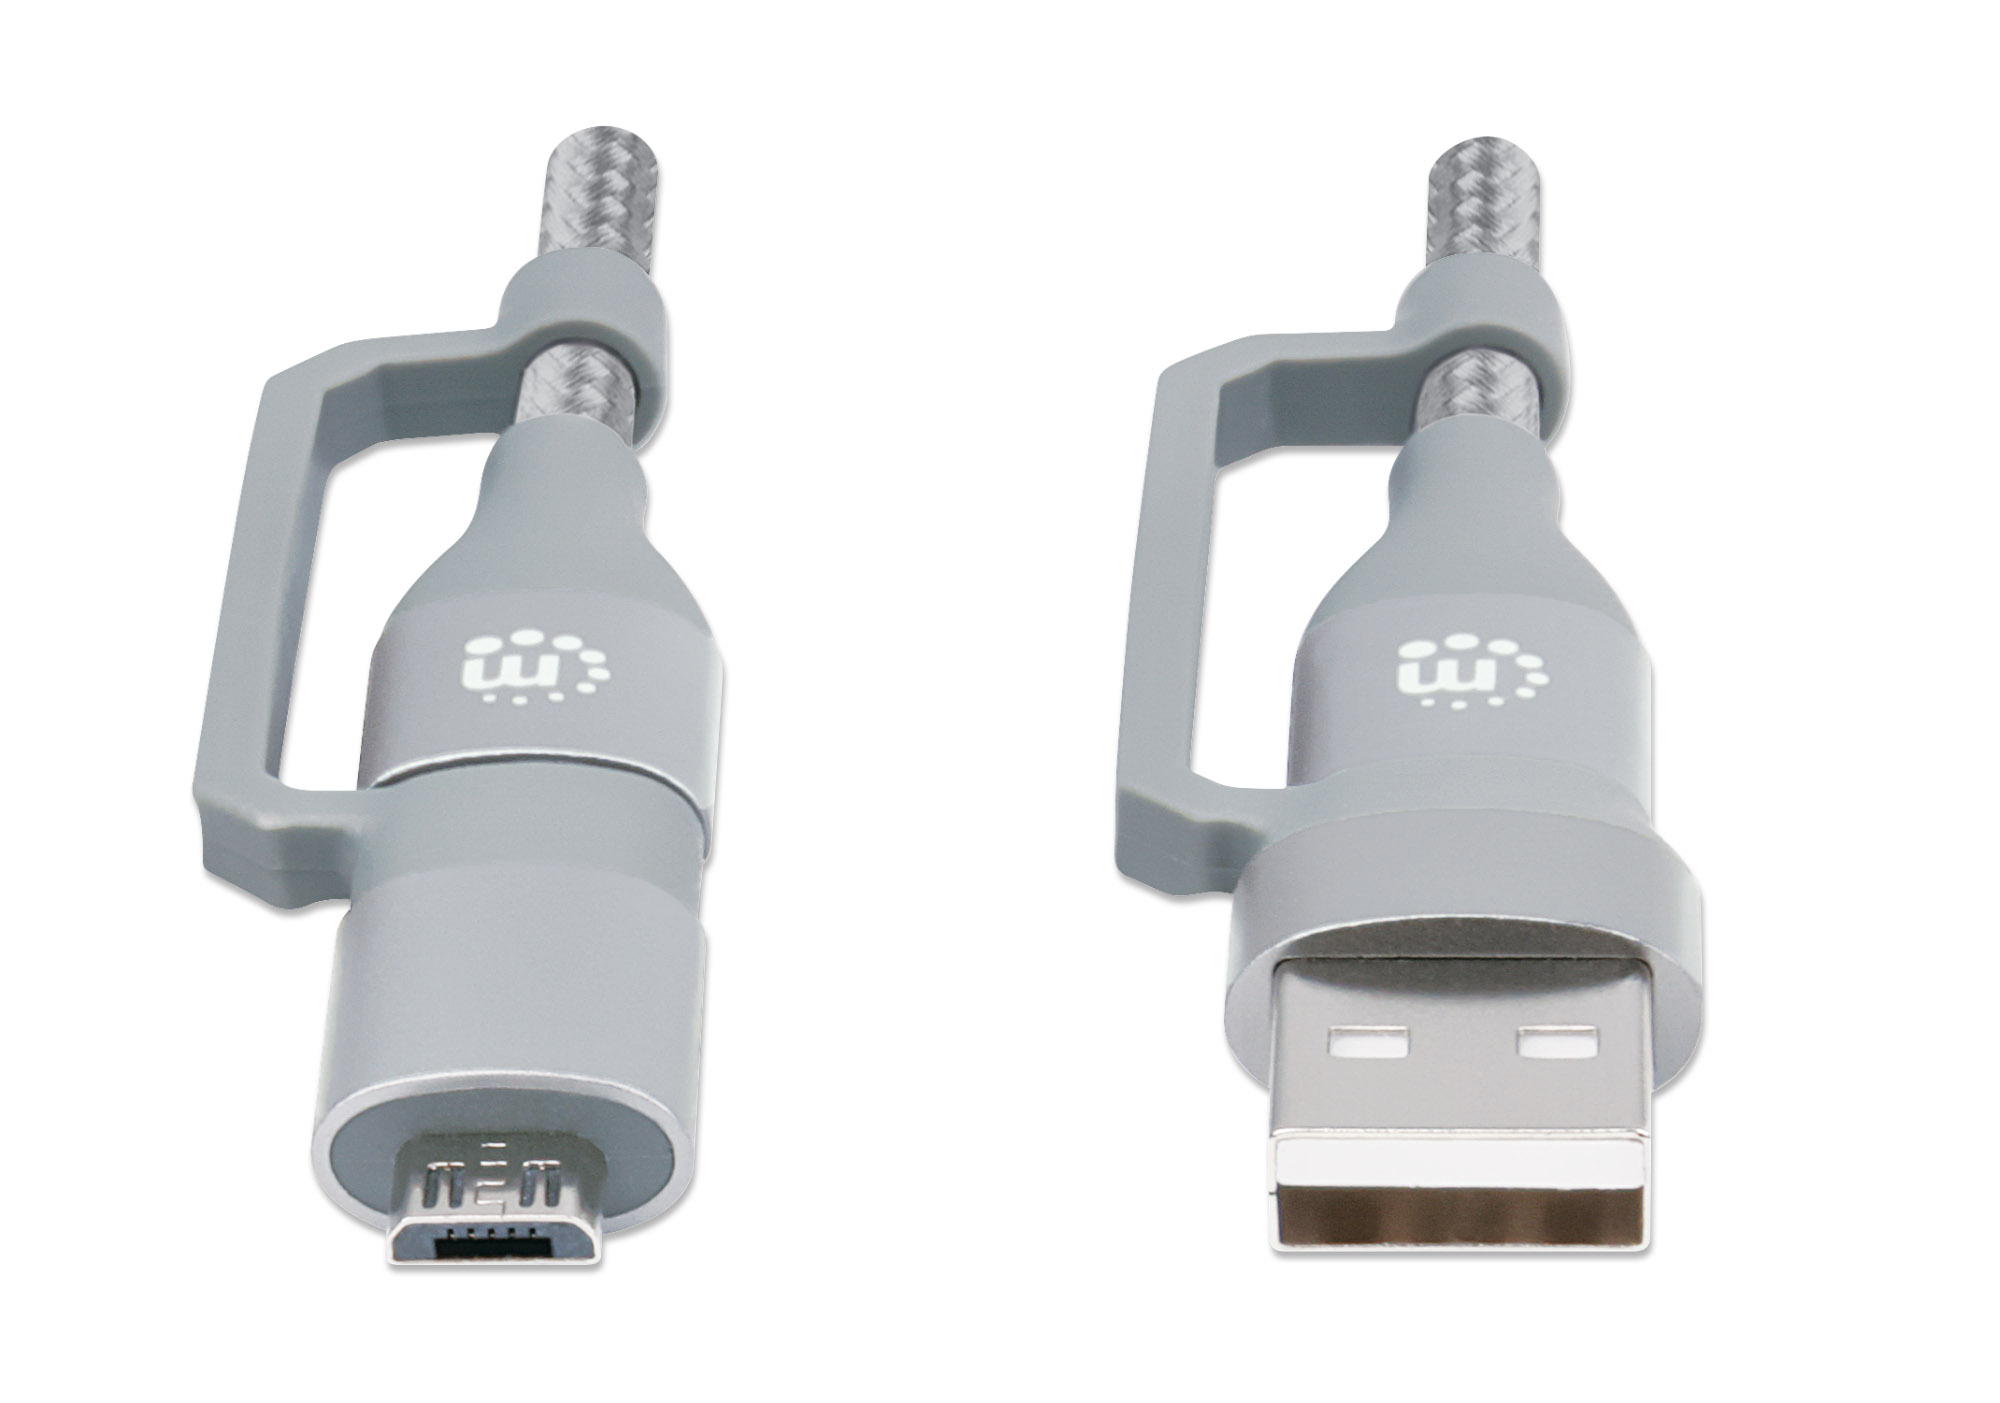 4-in-1 Charge & Sync USB Cable